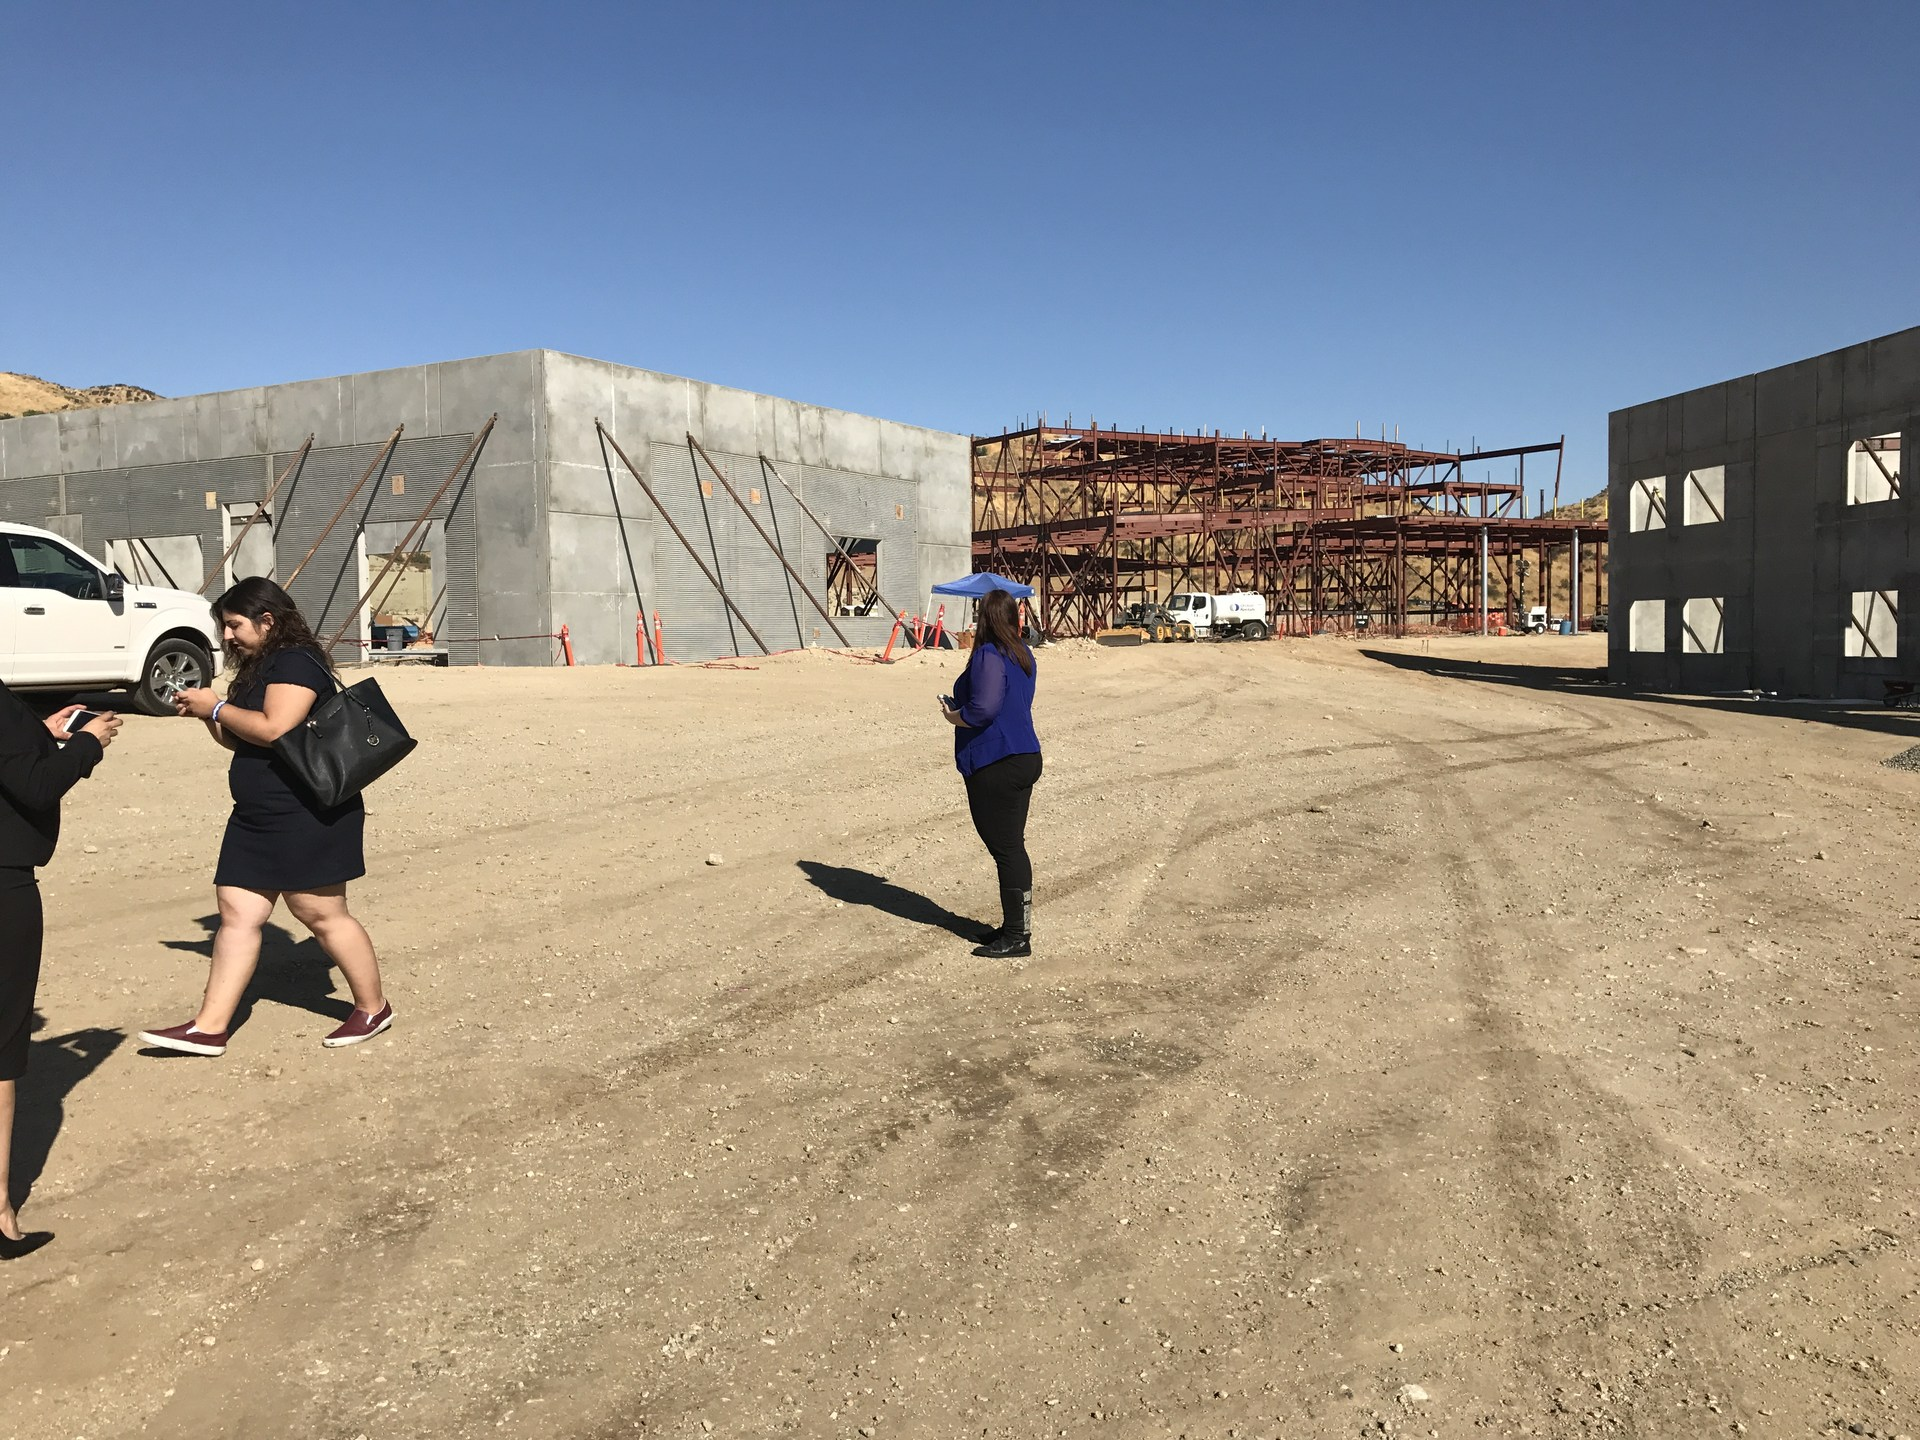 September 29, 2017 update: The walls are going up!